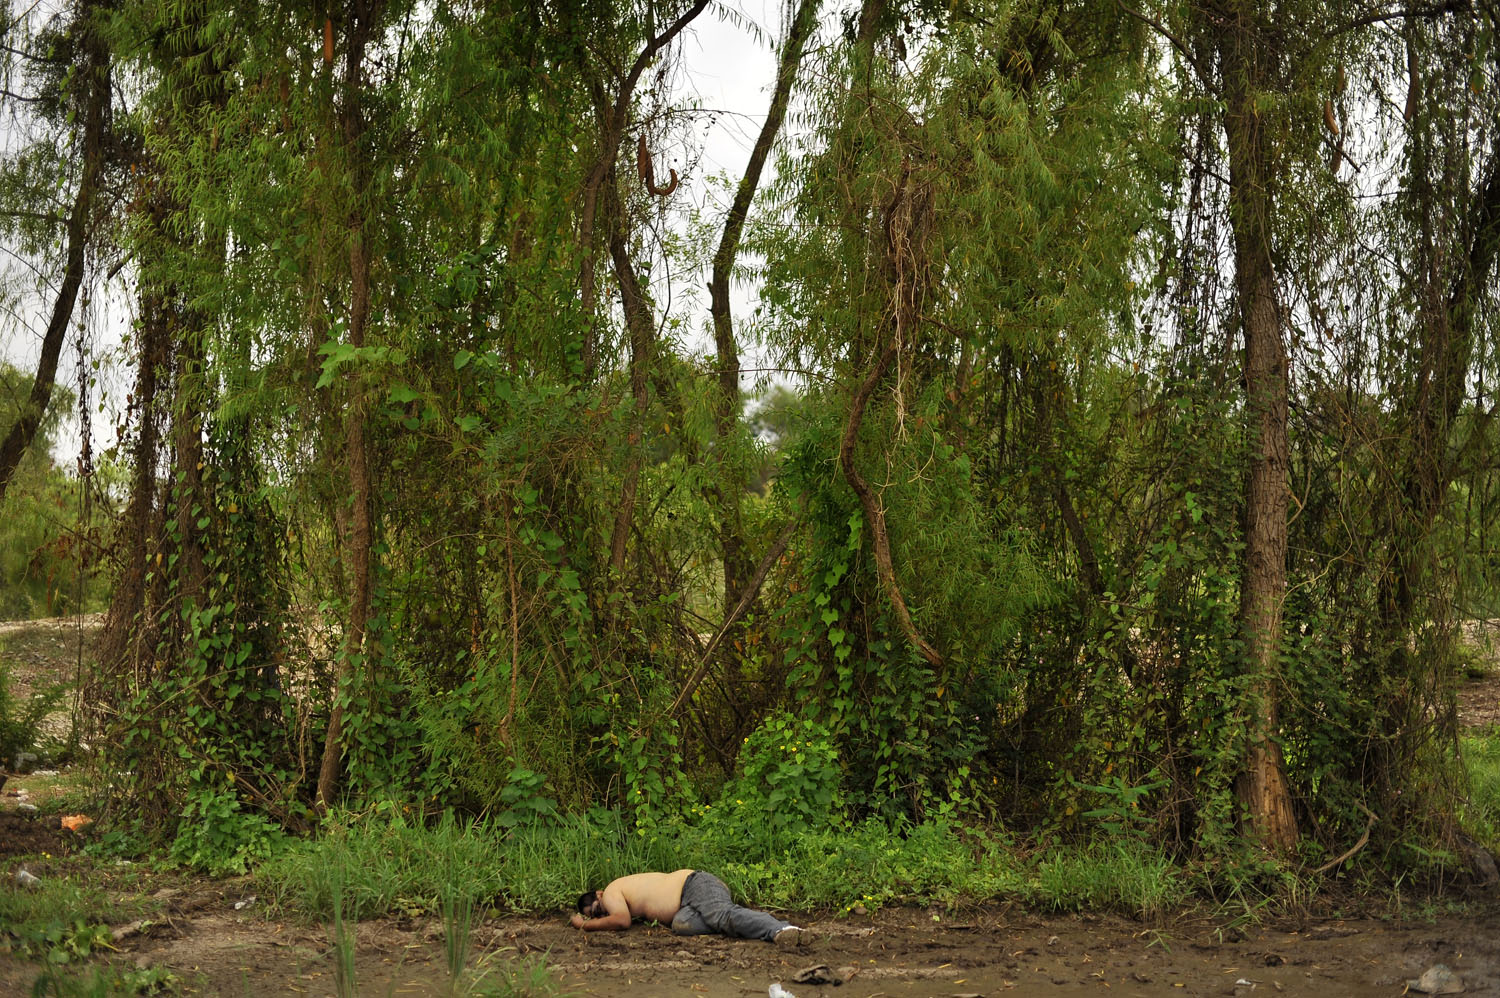 The New Yorker Photo Booth: Contemporary Mexican PhotographyAn unidentified body on the banks of the Humaya River, in Culiacán, Mexico, in 2011.